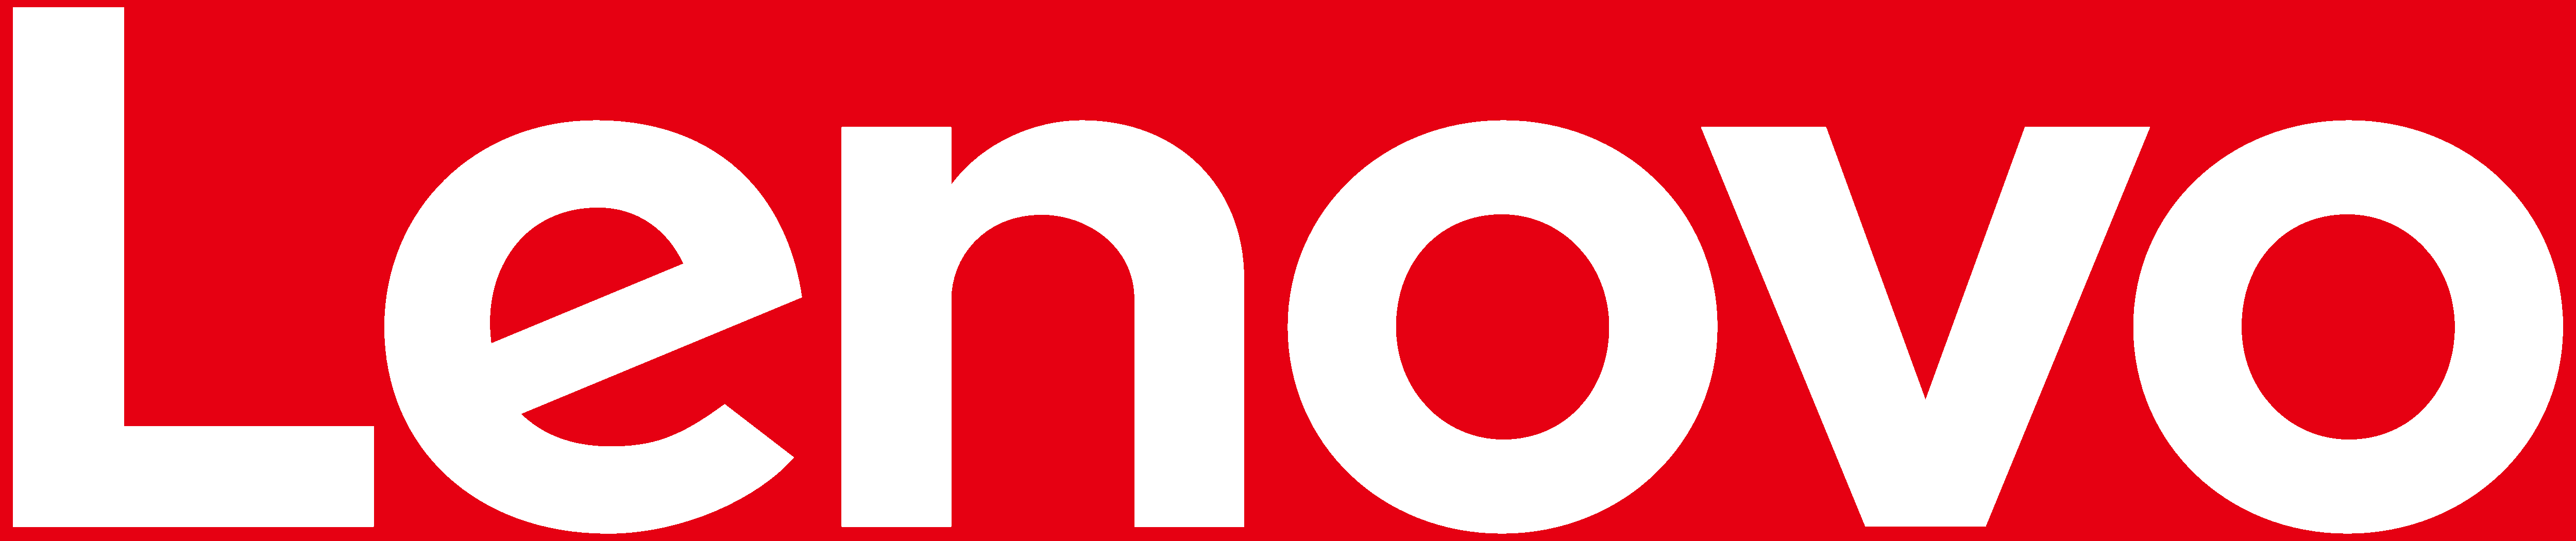 Lenovo Red Logo Wallpaper